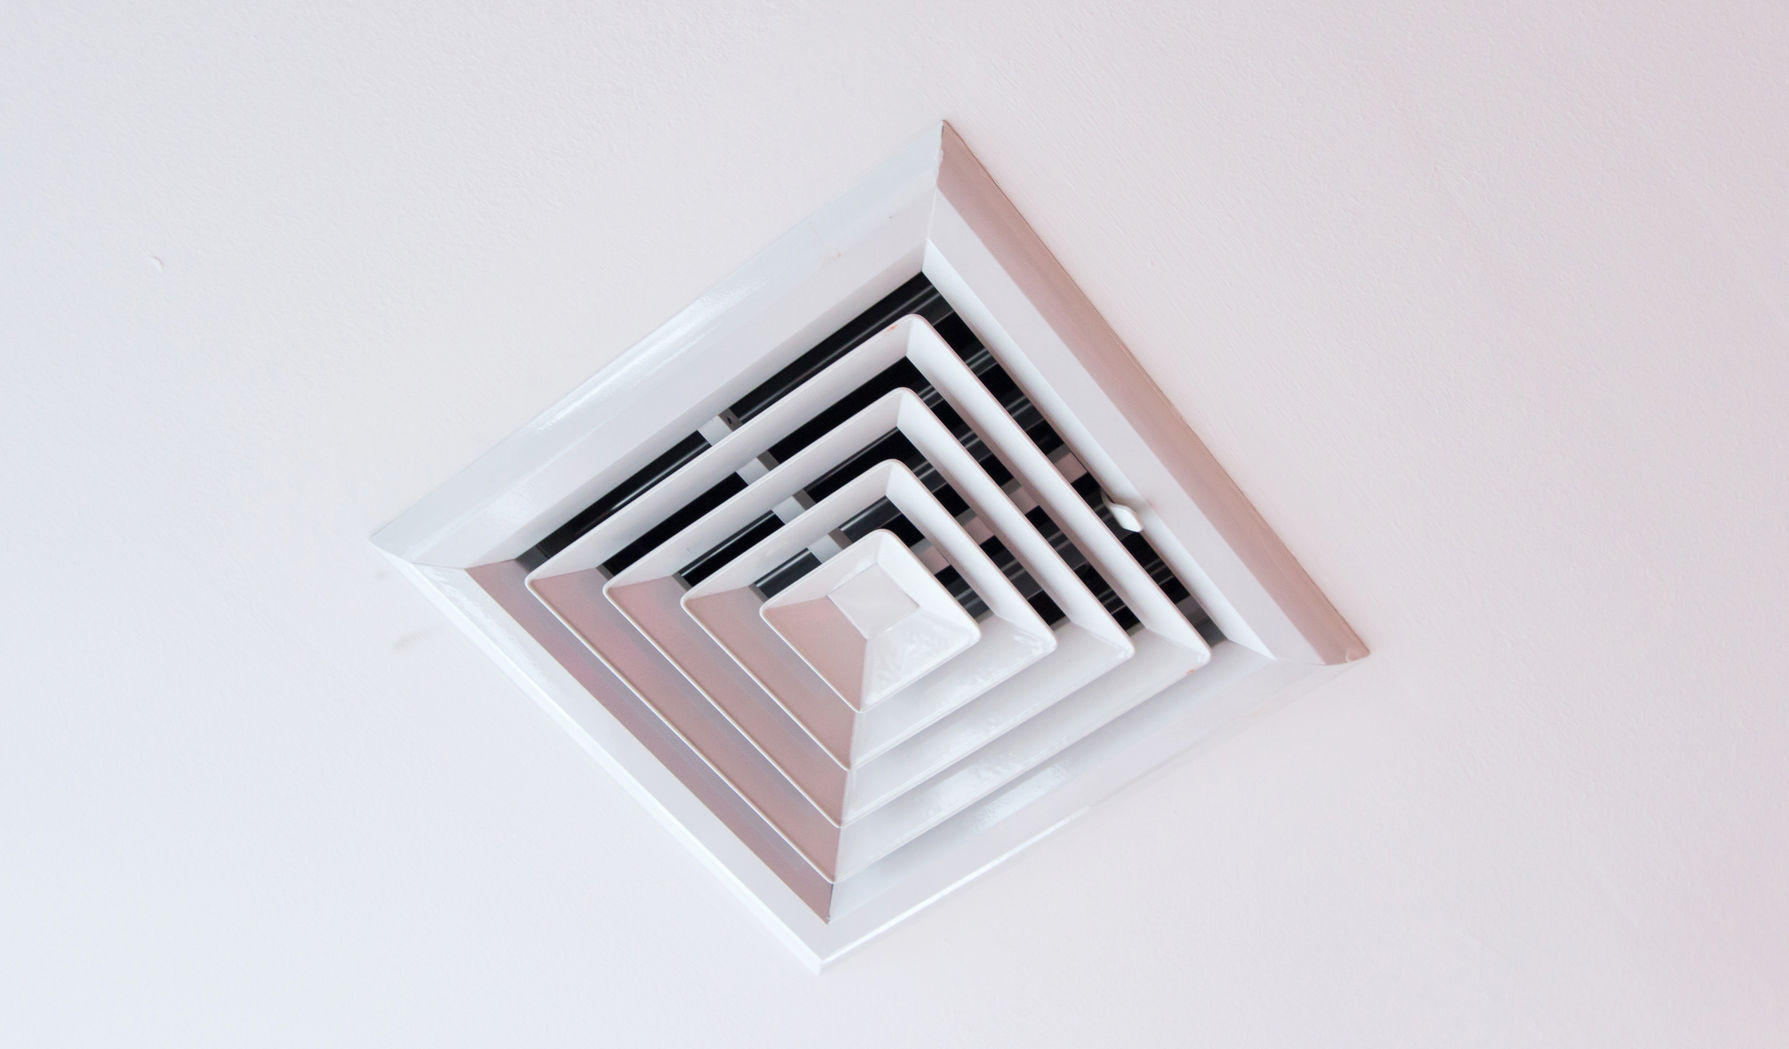 air ducts sweating